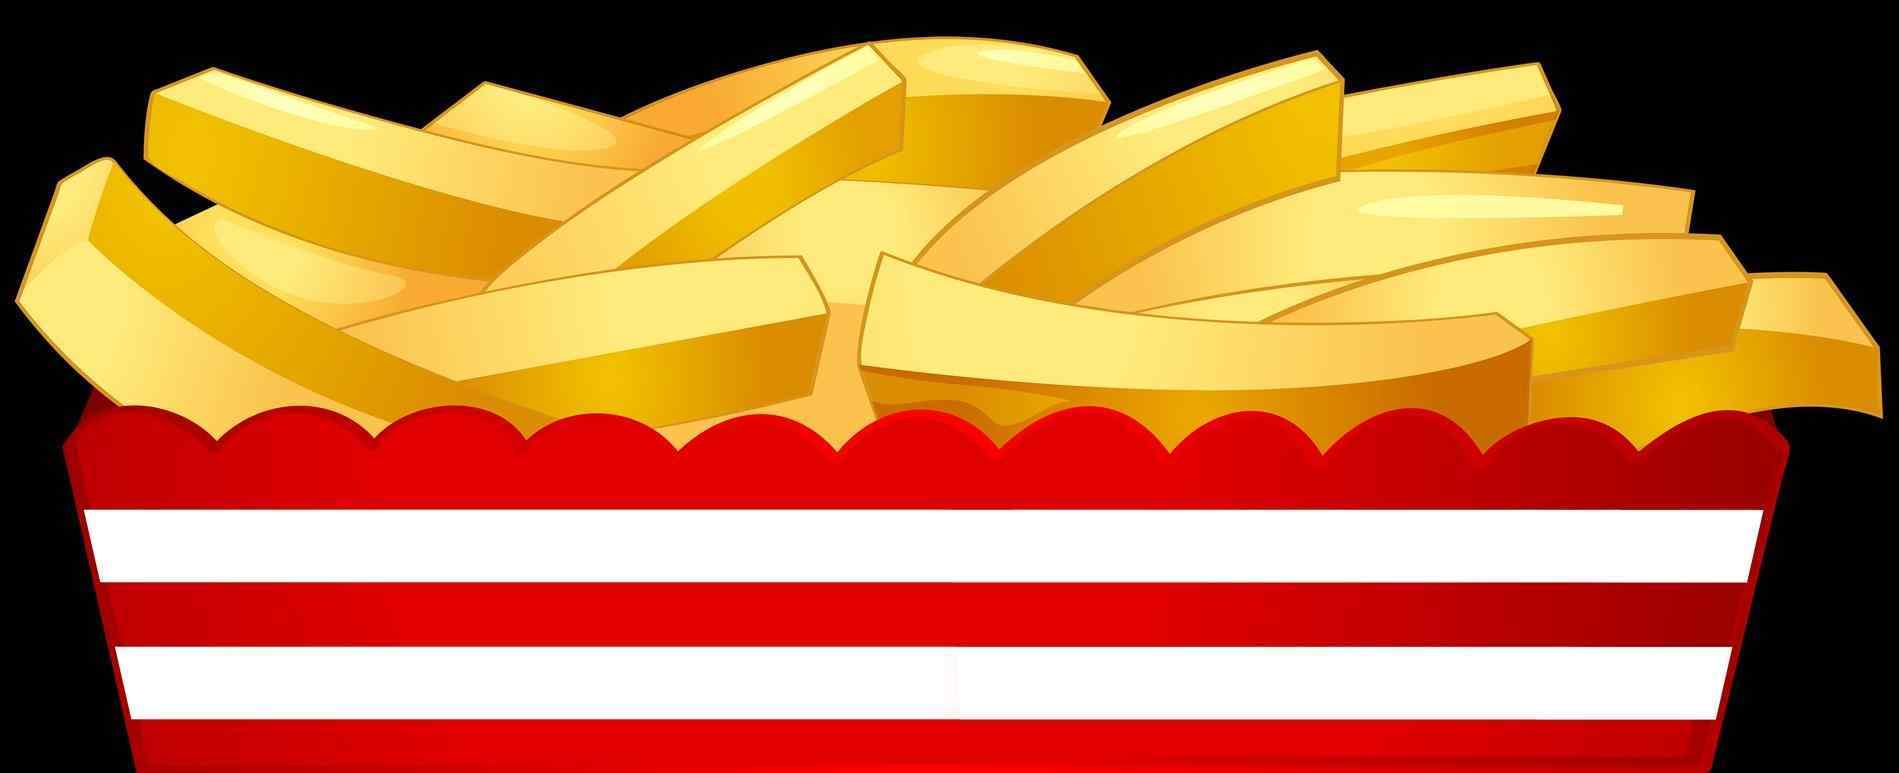 Food bad pencil and. Chips clipart hot chip